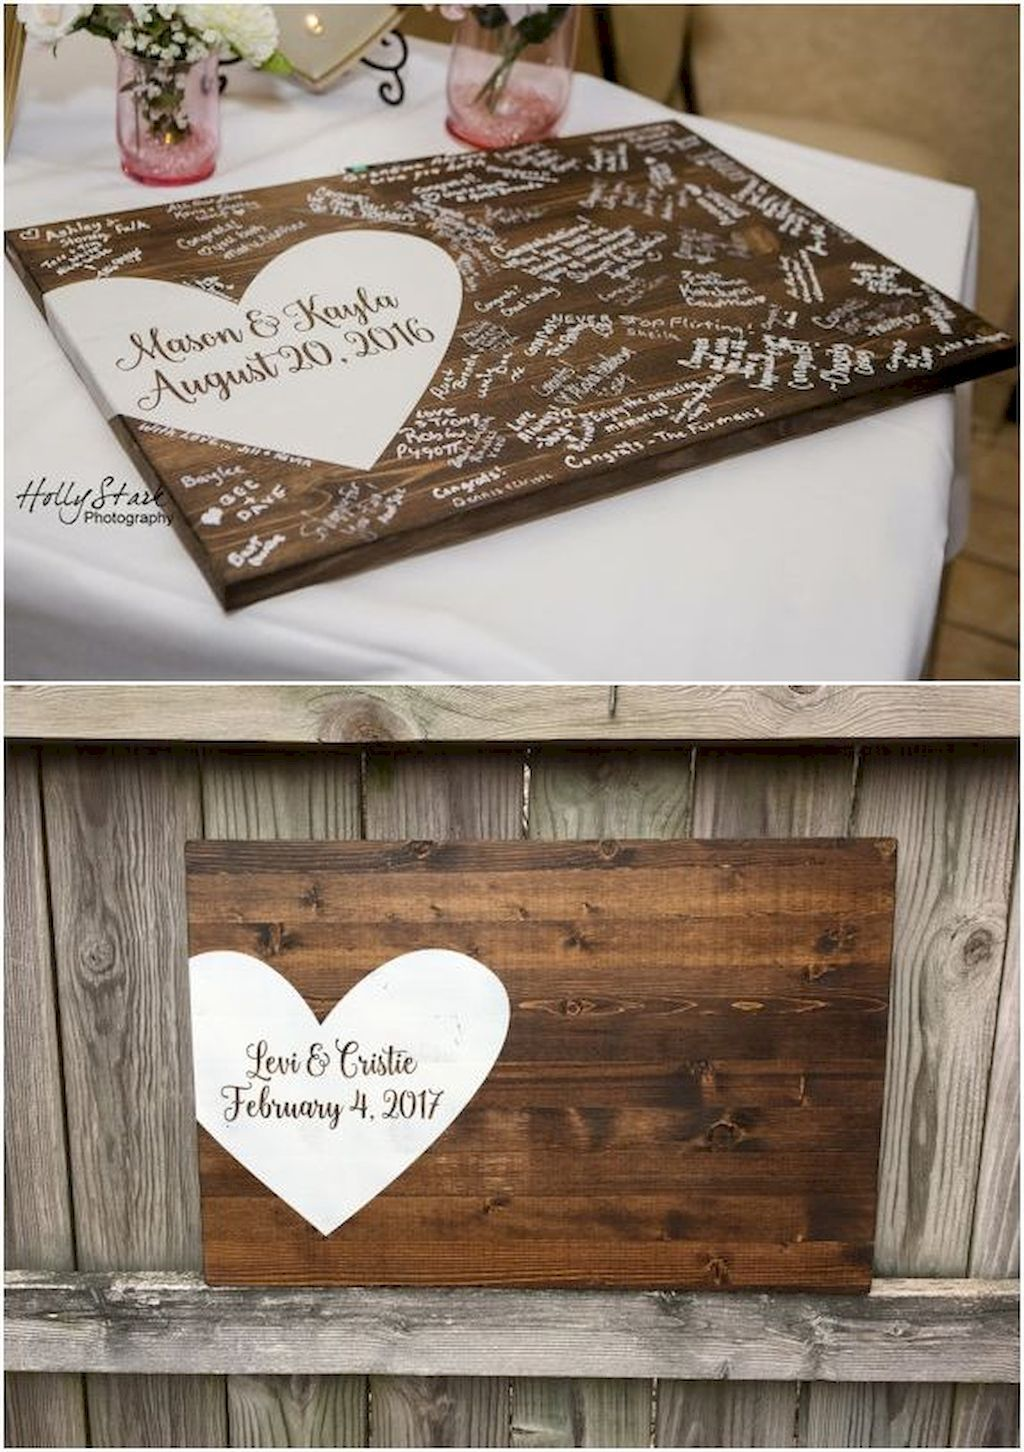 47 unique wedding guest book ideas | wedding in 2018 | pinterest